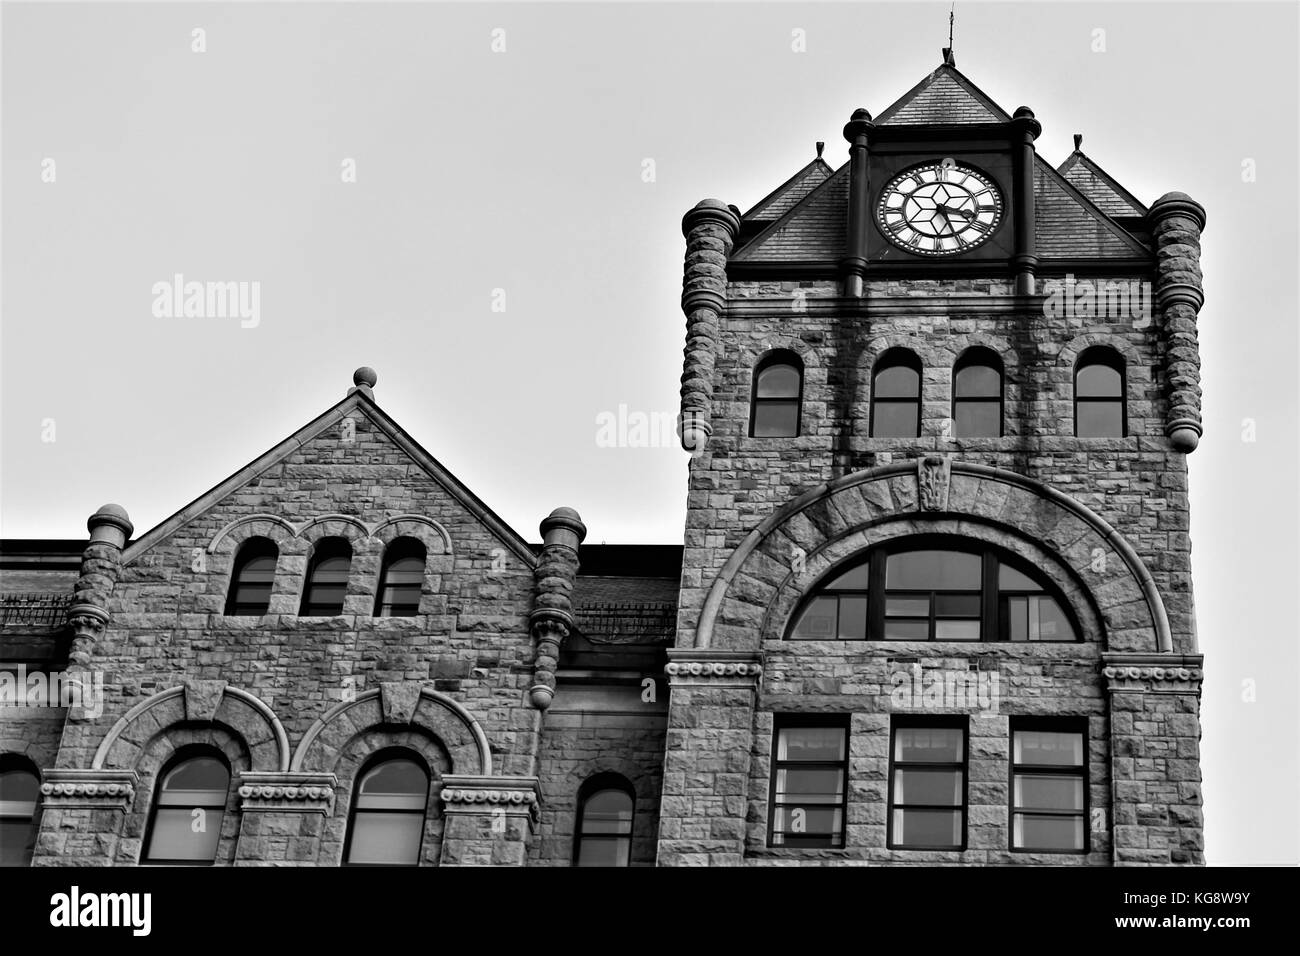 Clock tower in the courthouse building, St. John's, Newfoundland and Labrador, Canada. - Stock Image